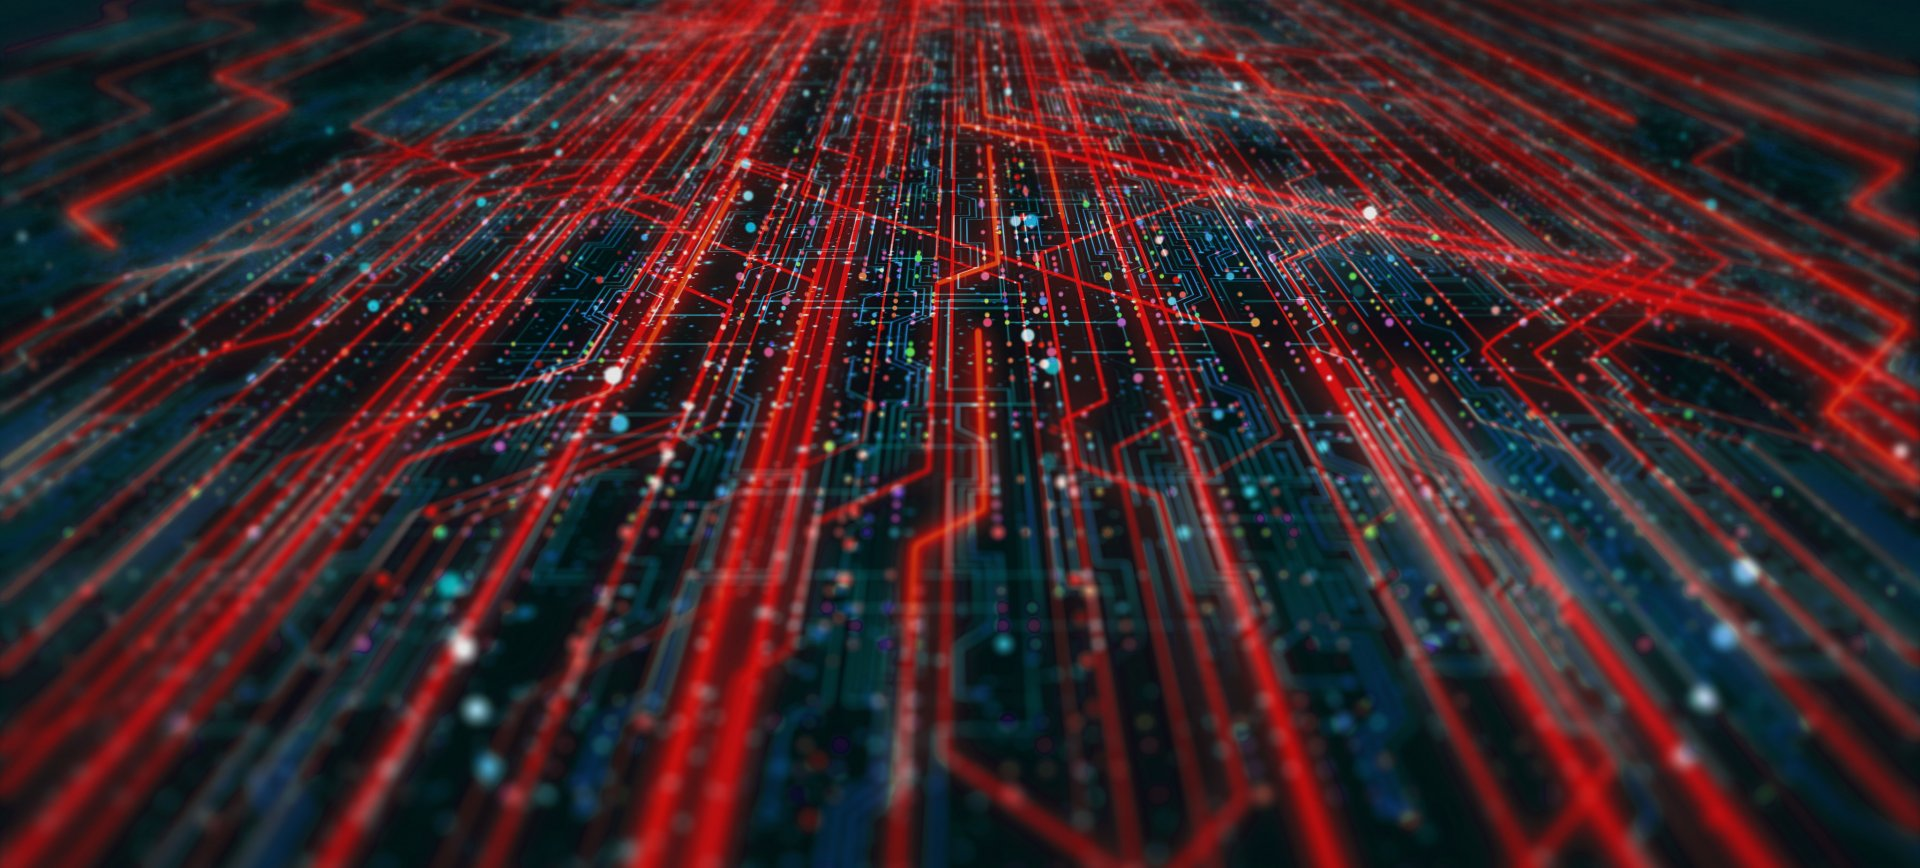 Red data flowing across a circuit board